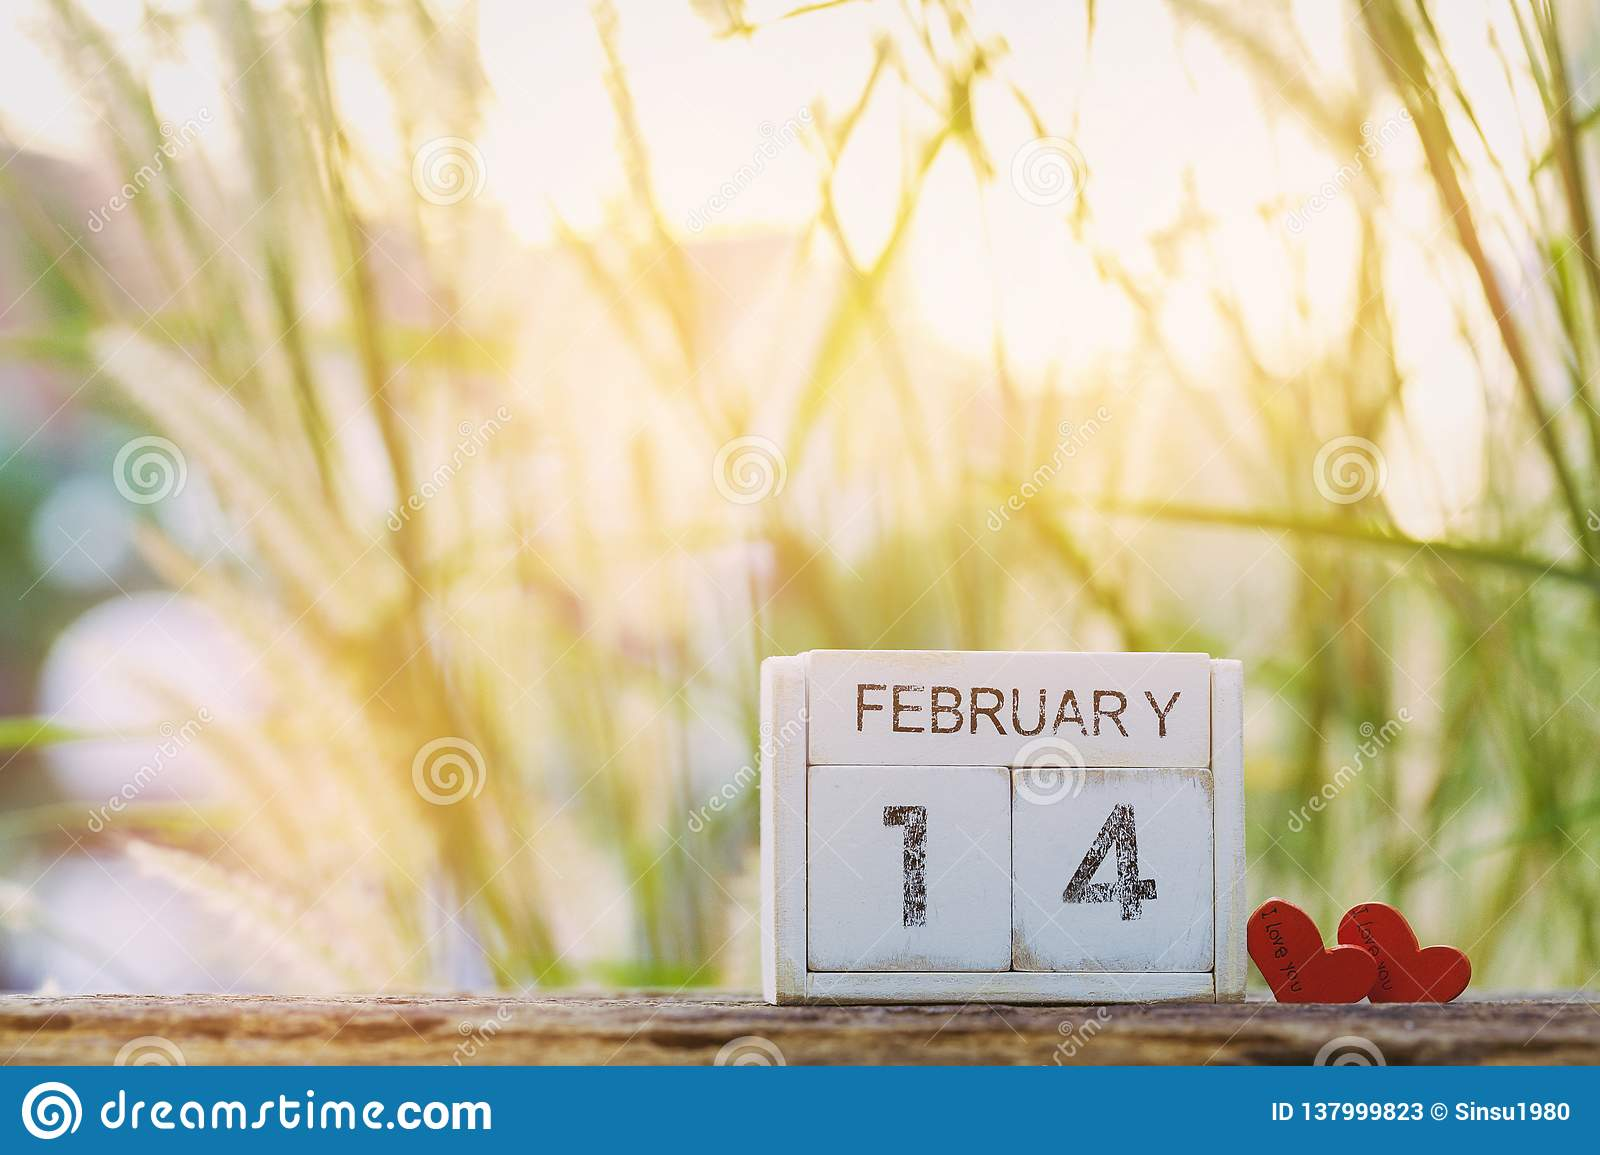 Wooden calendar show of February 14 with pink heart. Valentine`s Day, or St Valentine`s Day.